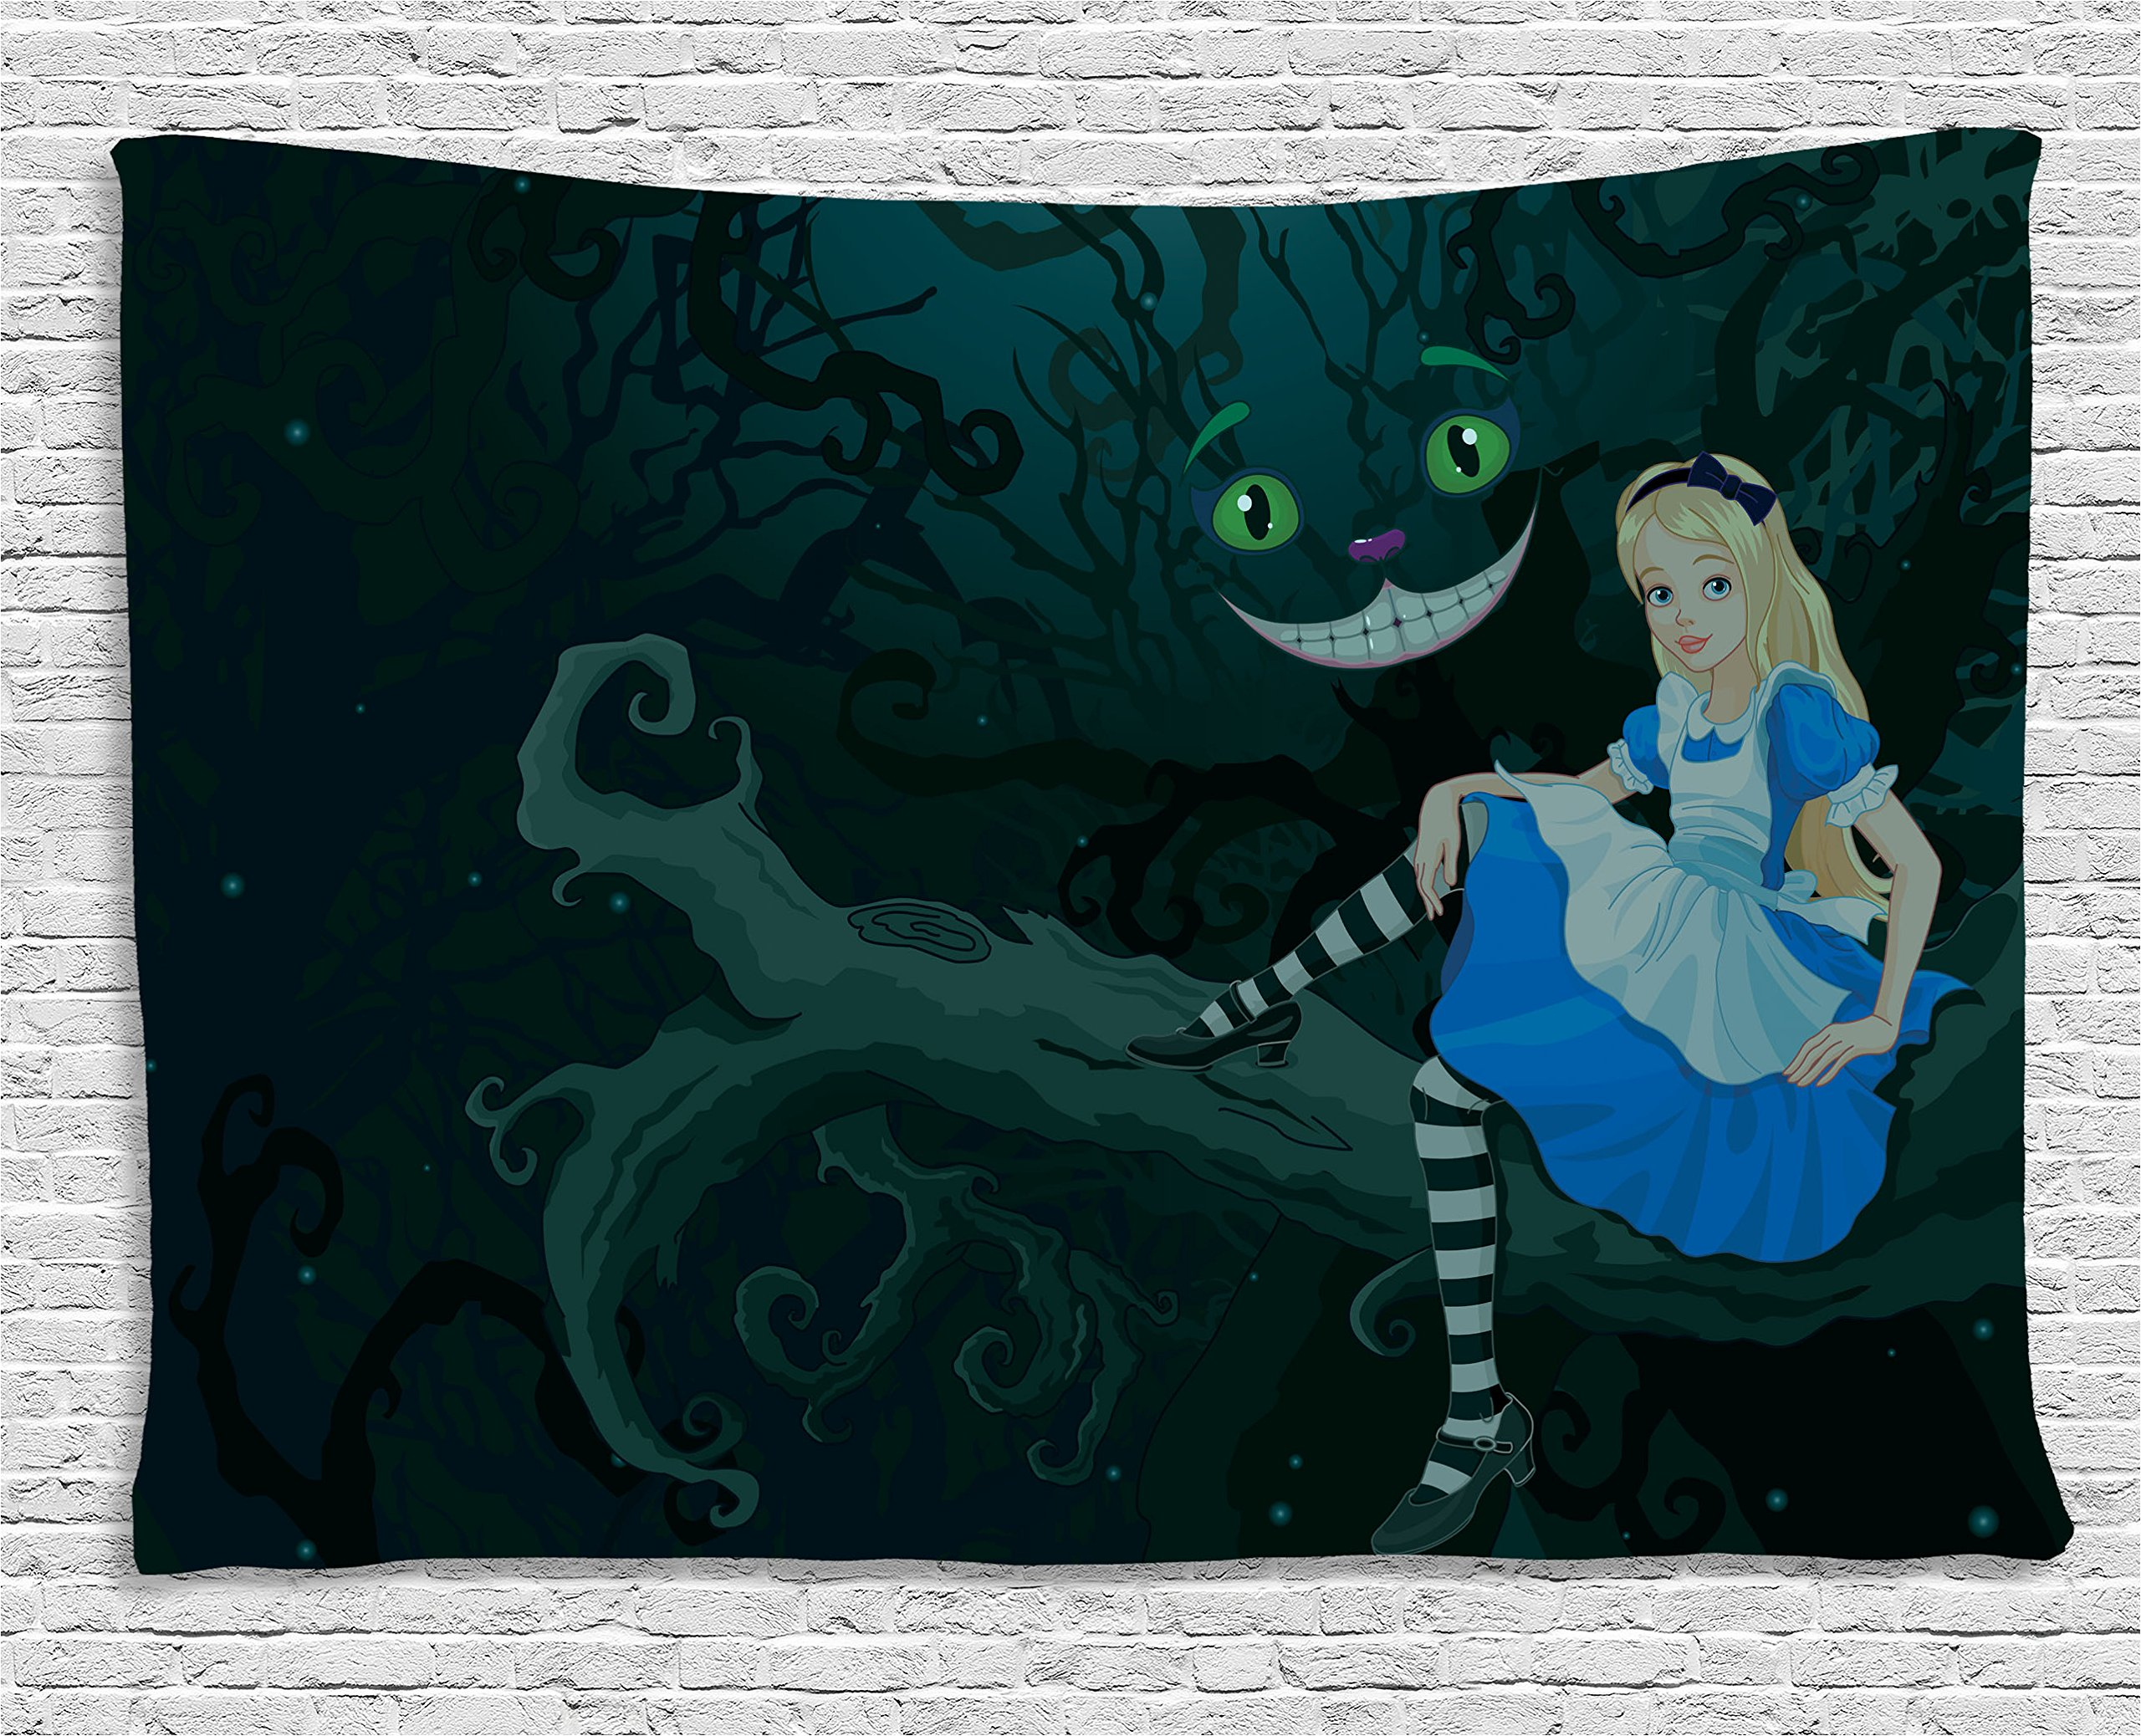 Ambesonne Alice in Wonderland Decor Tapestry, Alice Sitting on Branch with Chescire Cat in Darkness Striped Cartoon Love, Wall Hanging for Bedroom Living Room Dorm, 80 W X 60 L inch, Multi Color